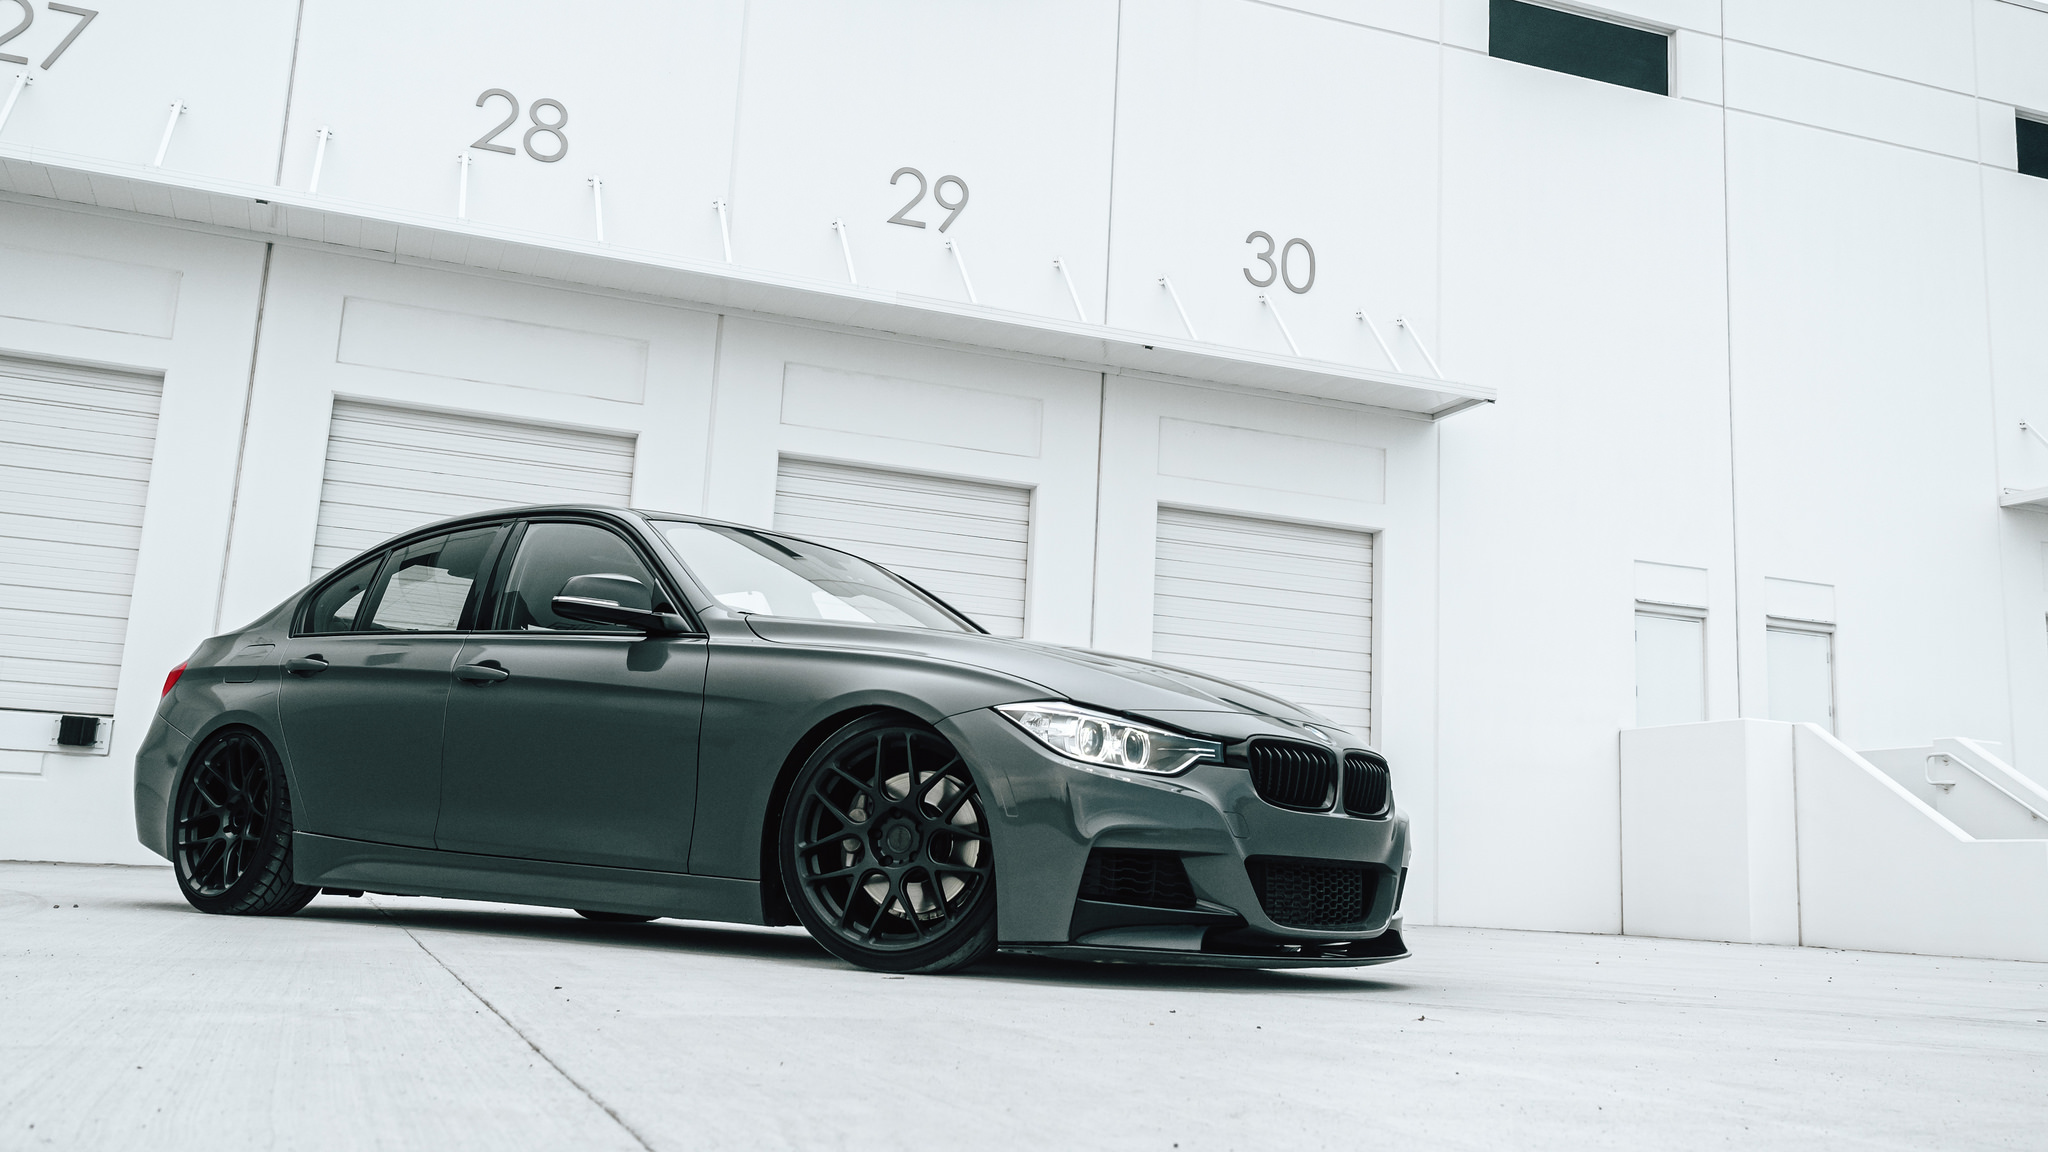 Tuned Bmw 3 Series Slammed On Morr Wheels Forcegt Com